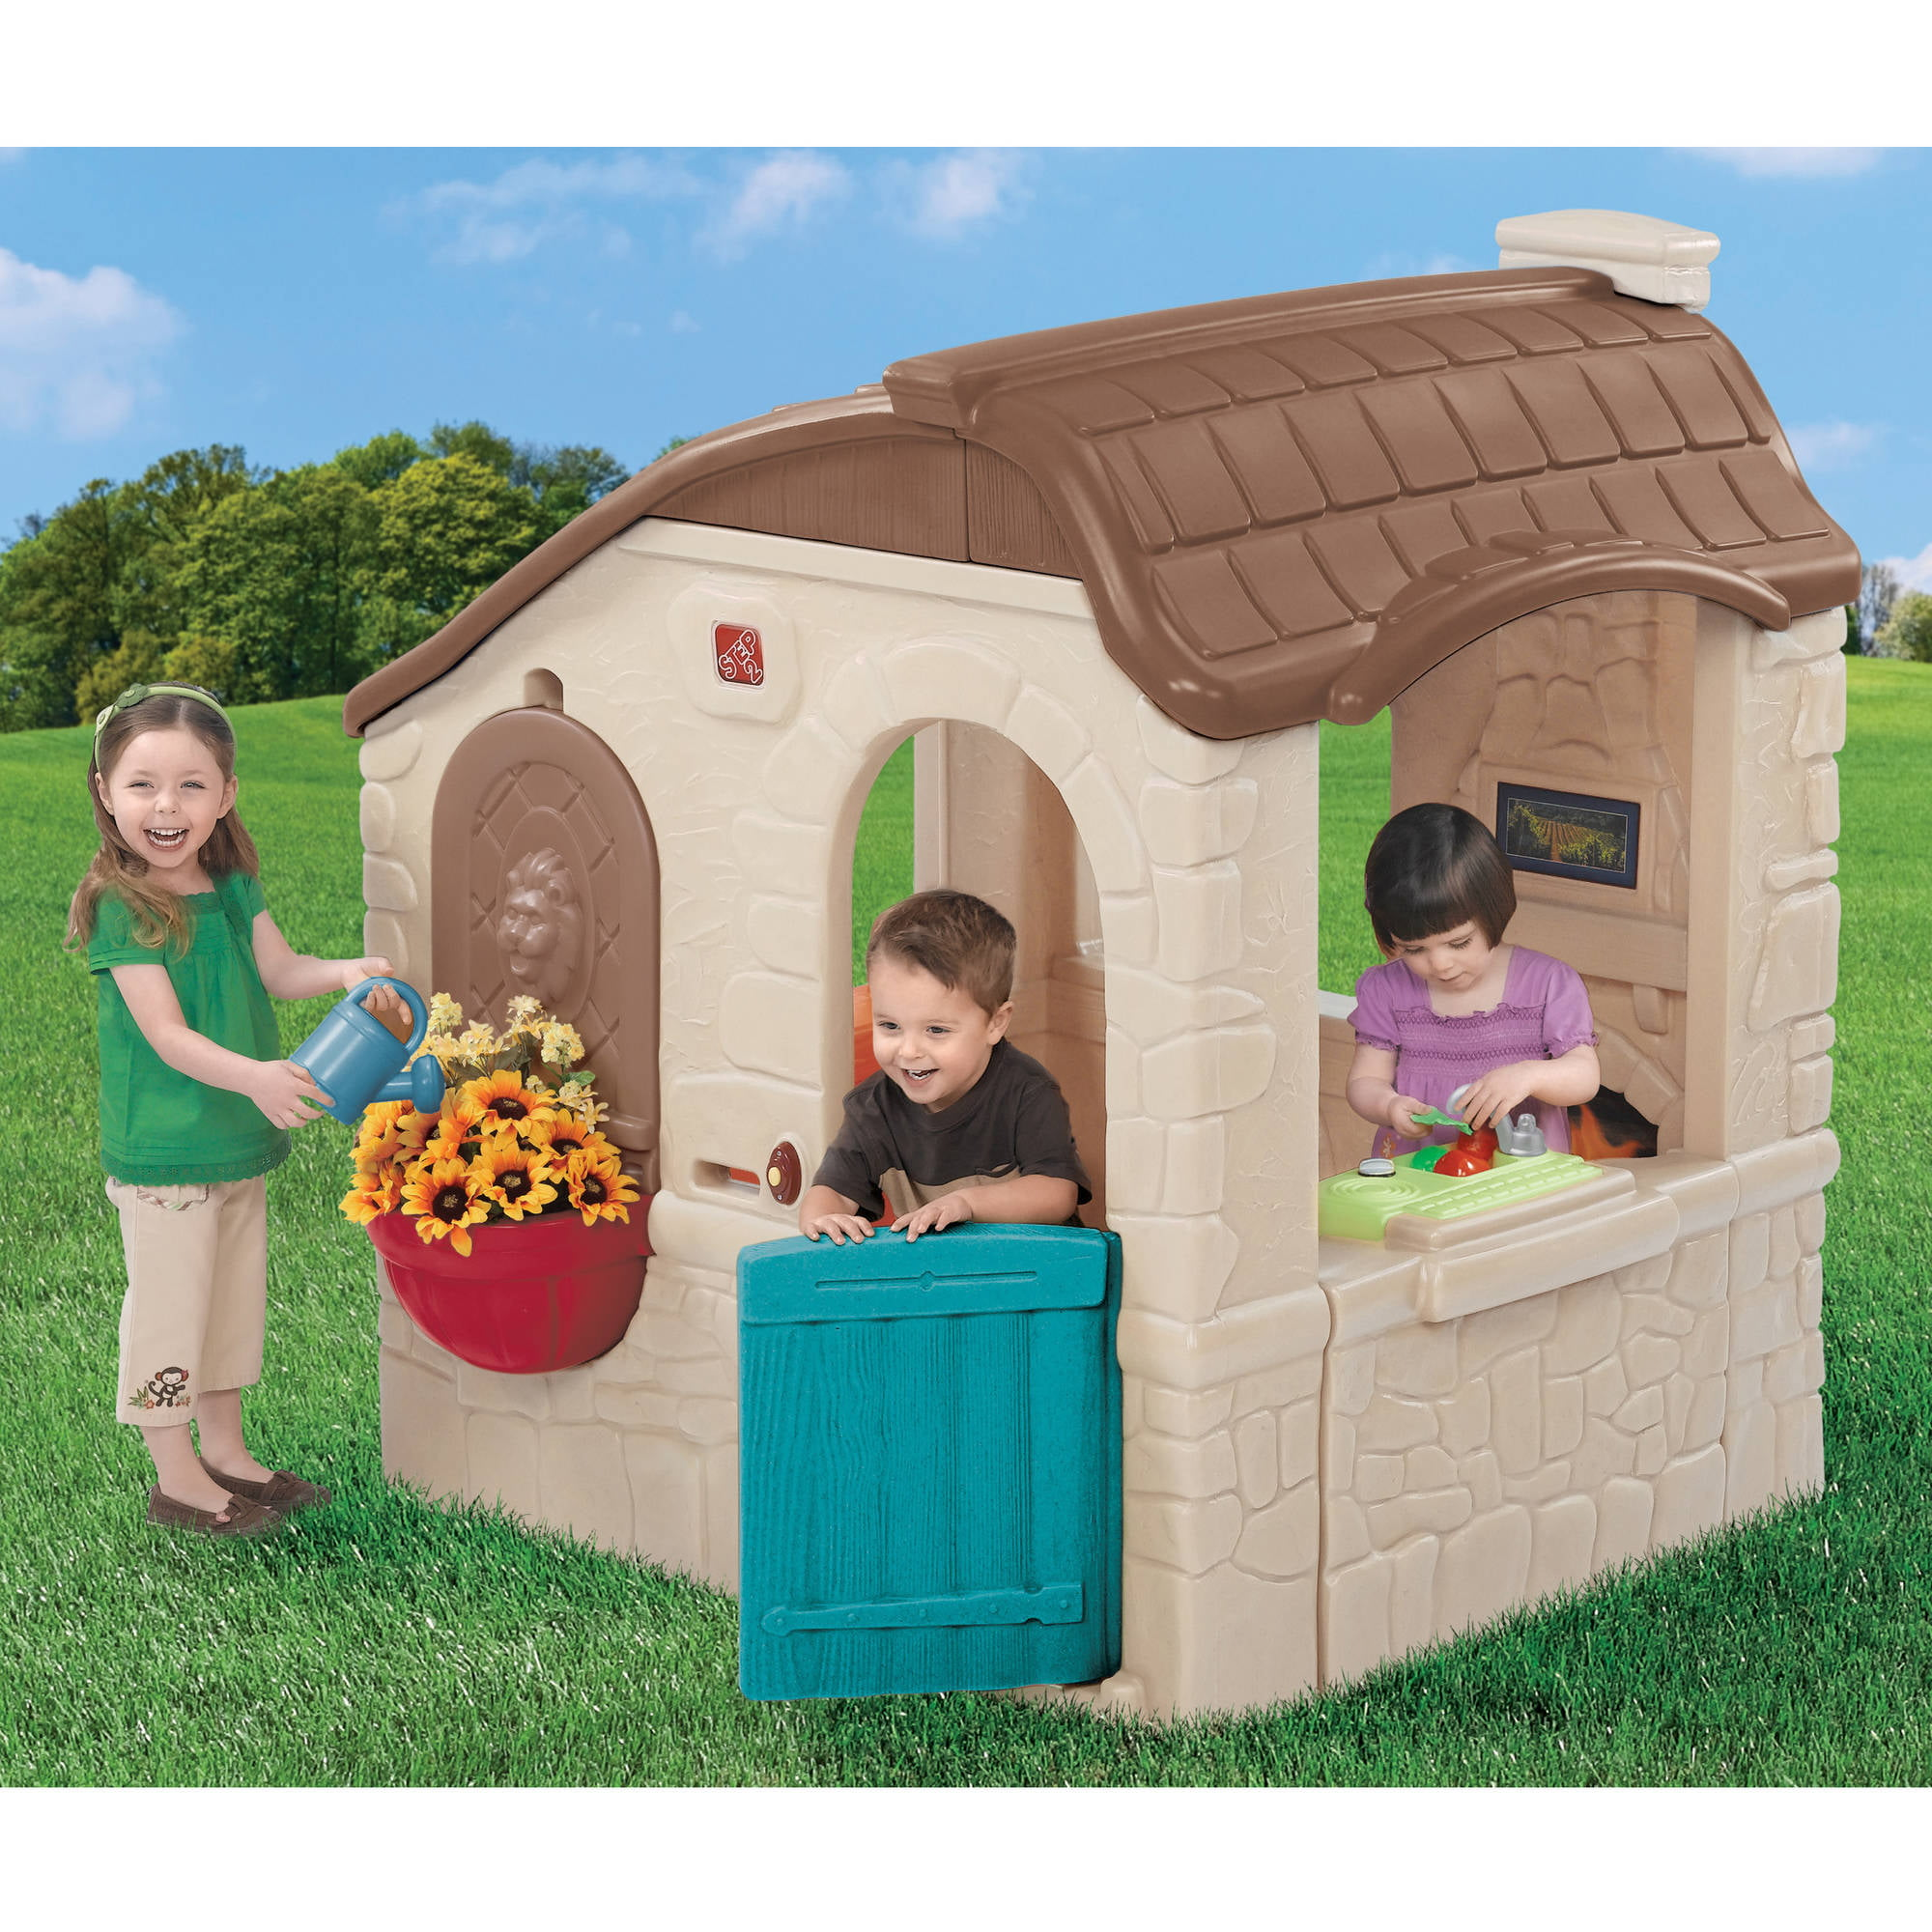 Step2 Naturally Playful Countryside Cottage, Tan Brown, Features a Mail Slot, Play Phone, and Realistic... by Generic